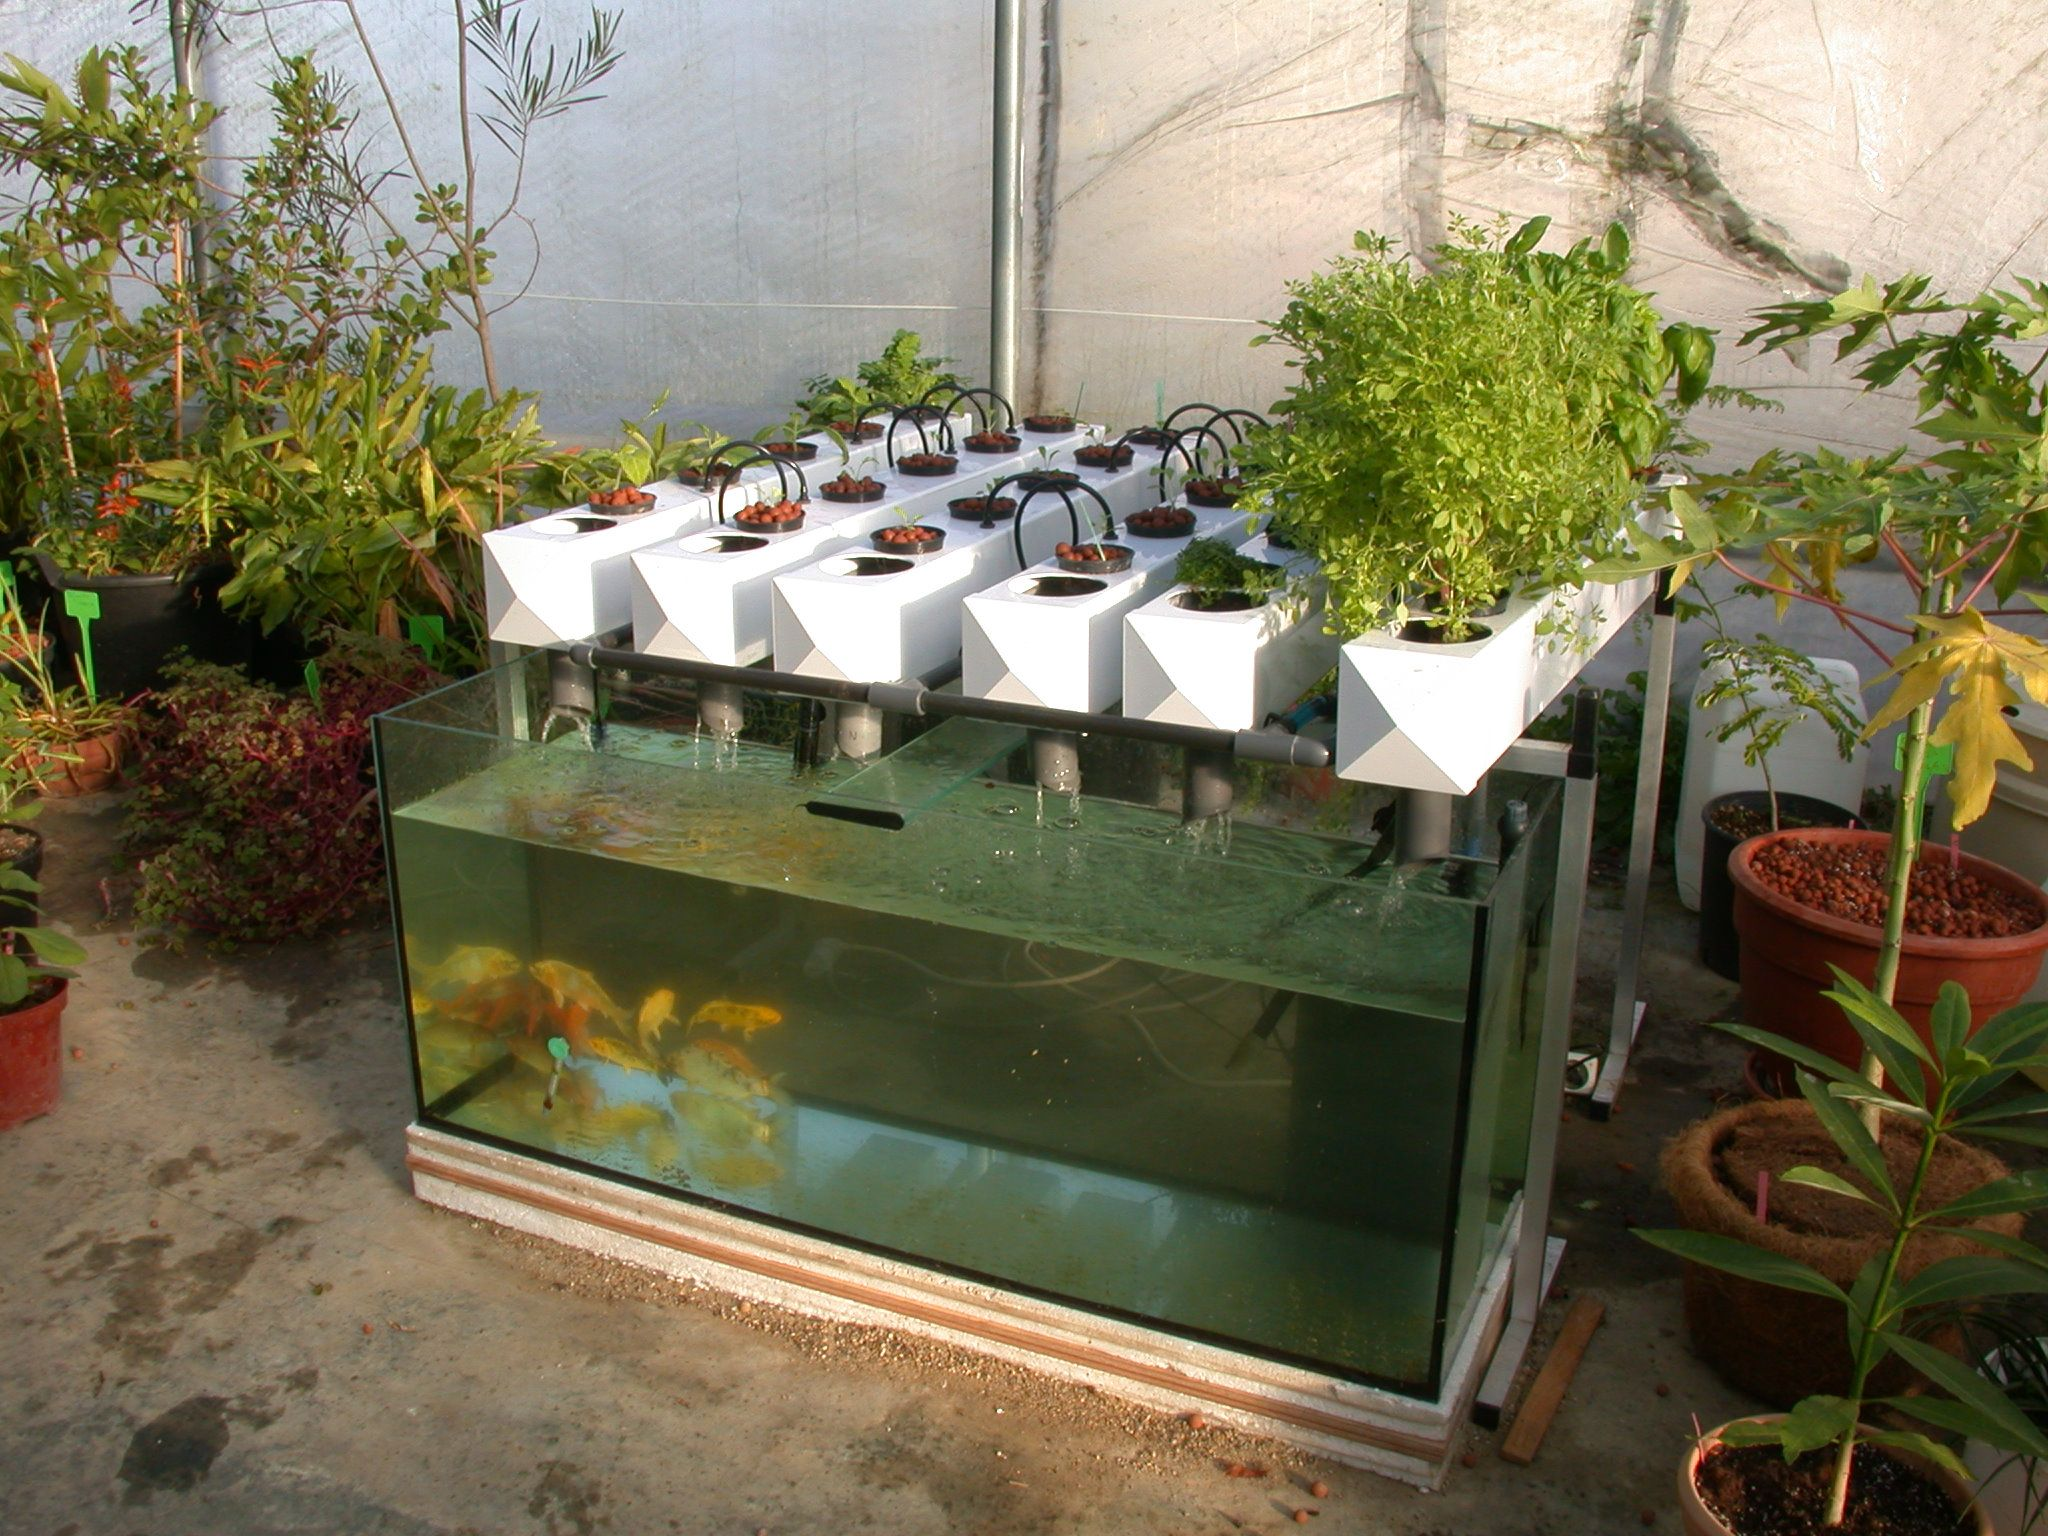 Aquaponics general hydroponics europe ghe official for Fish used in aquaponics